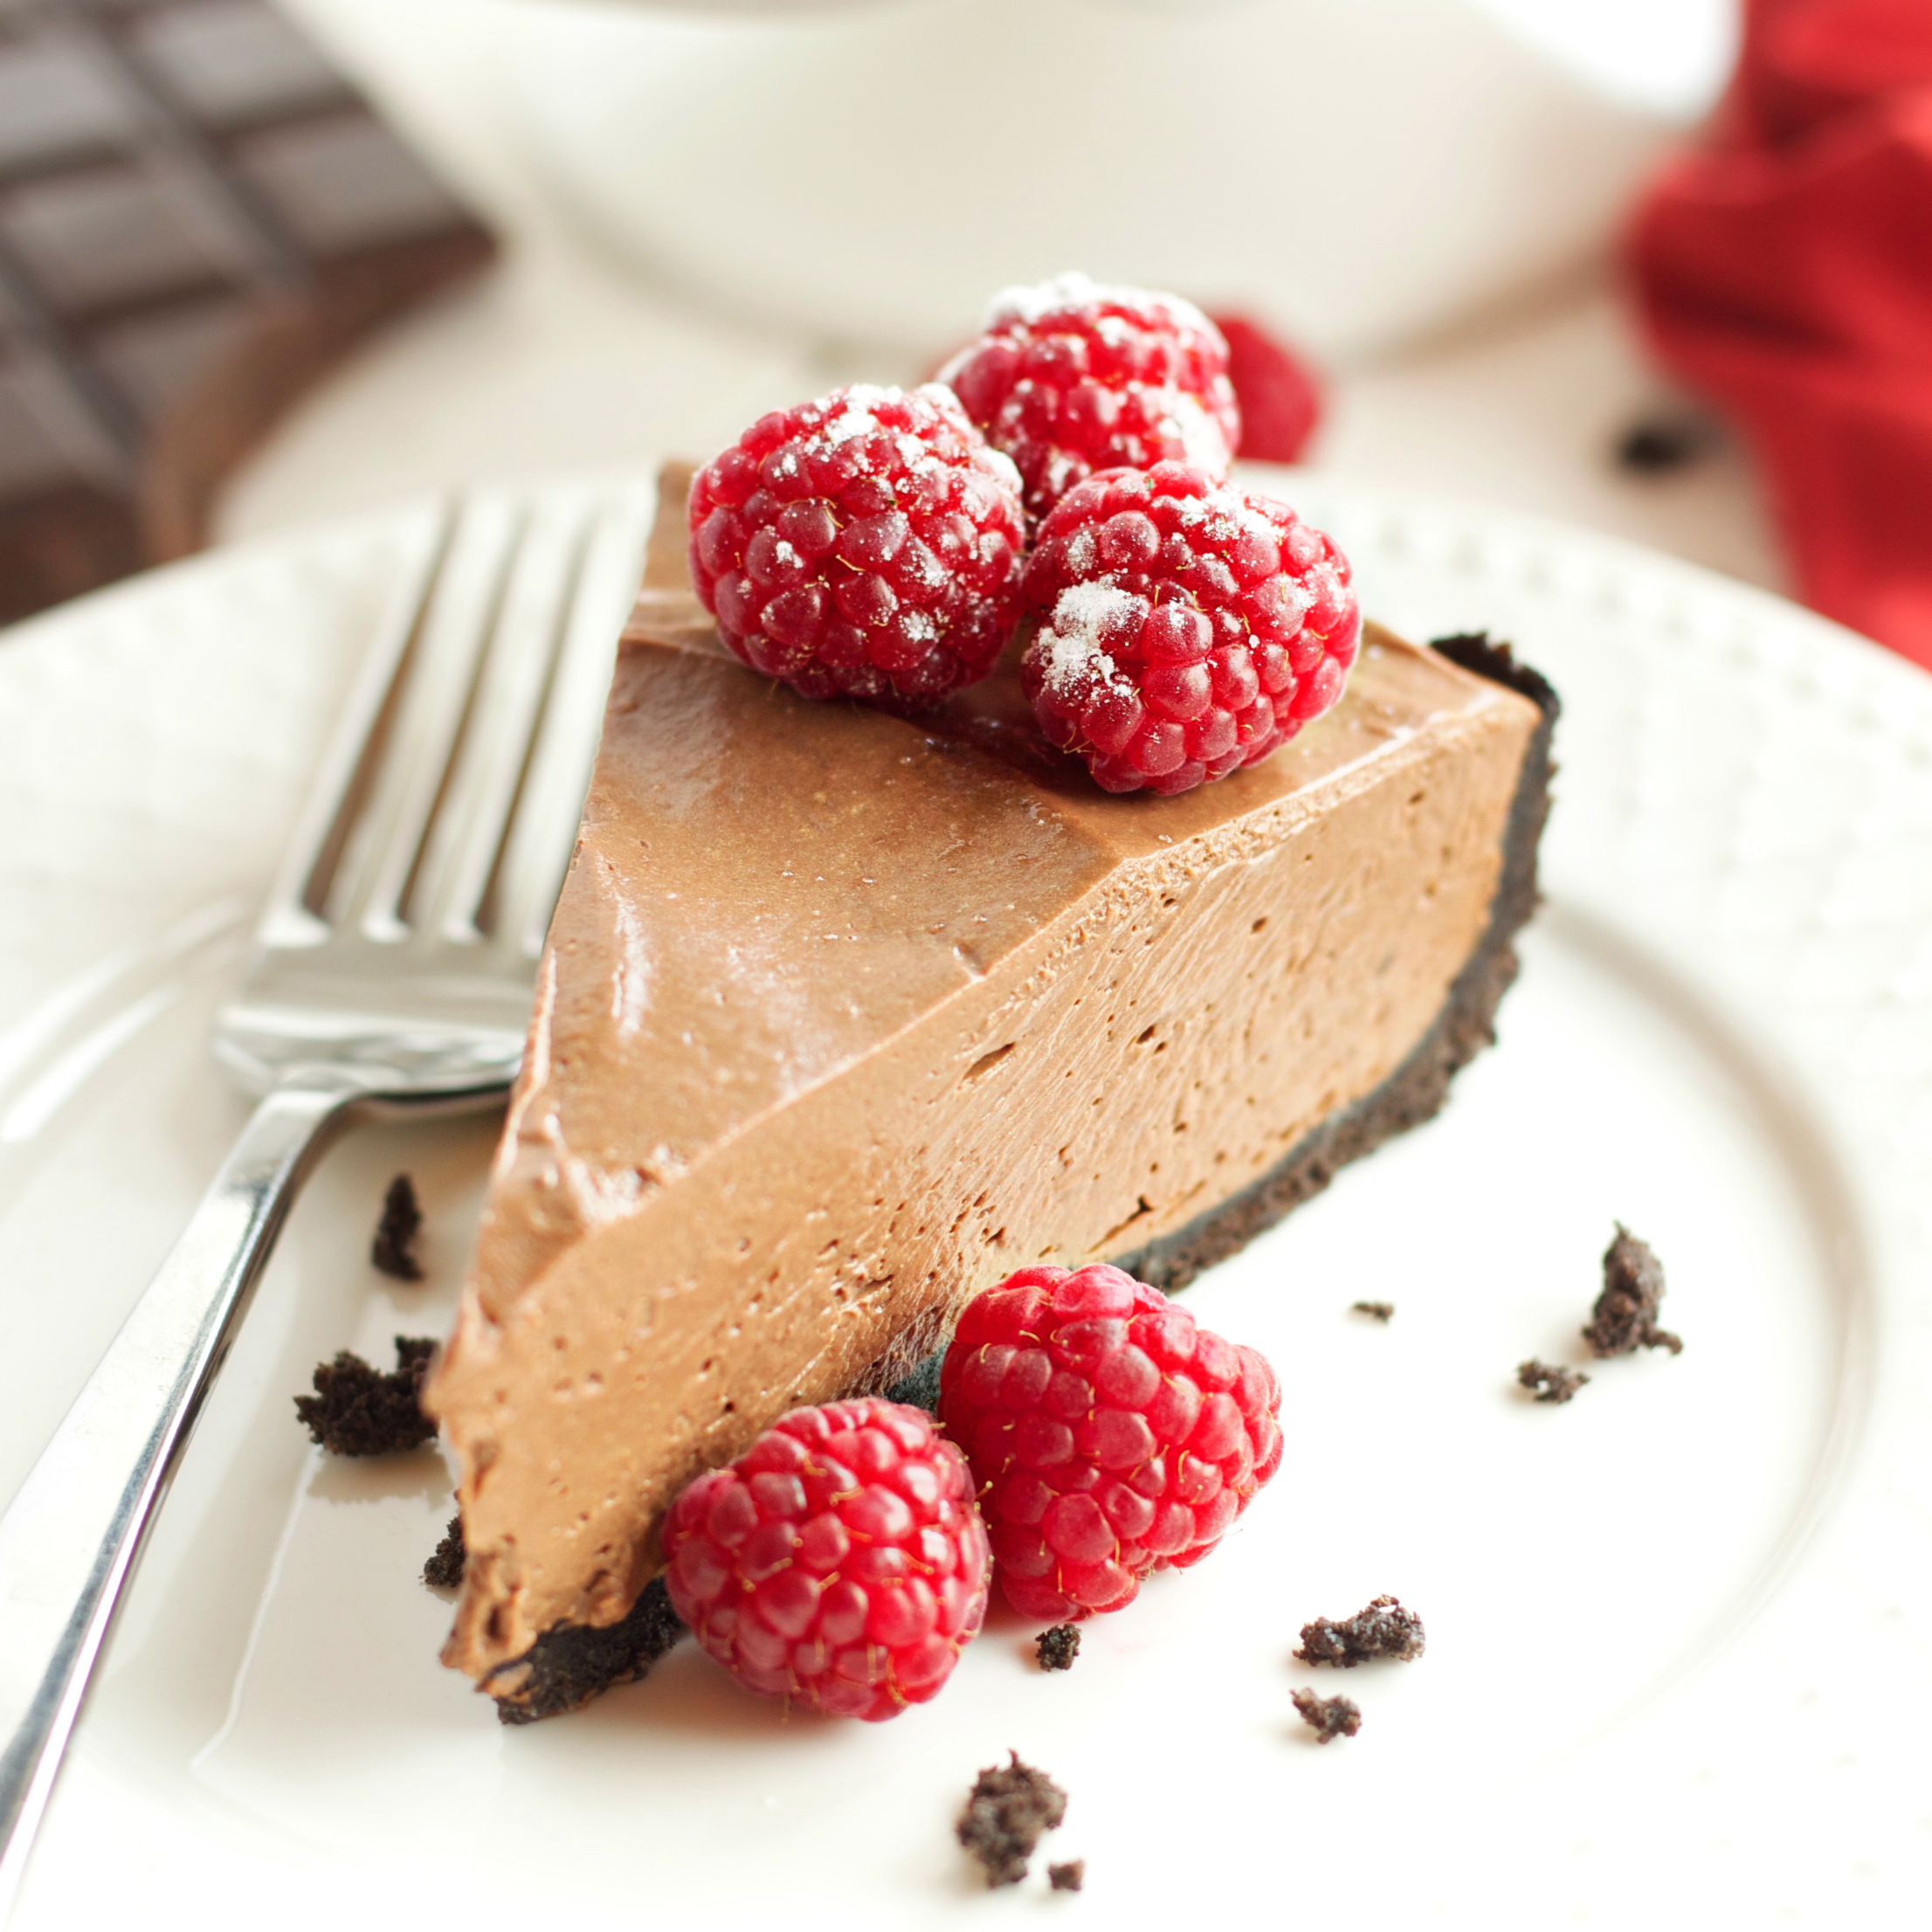 No Bake Chocolate Mousse Cheesecake (Vegan and Dairy Free)